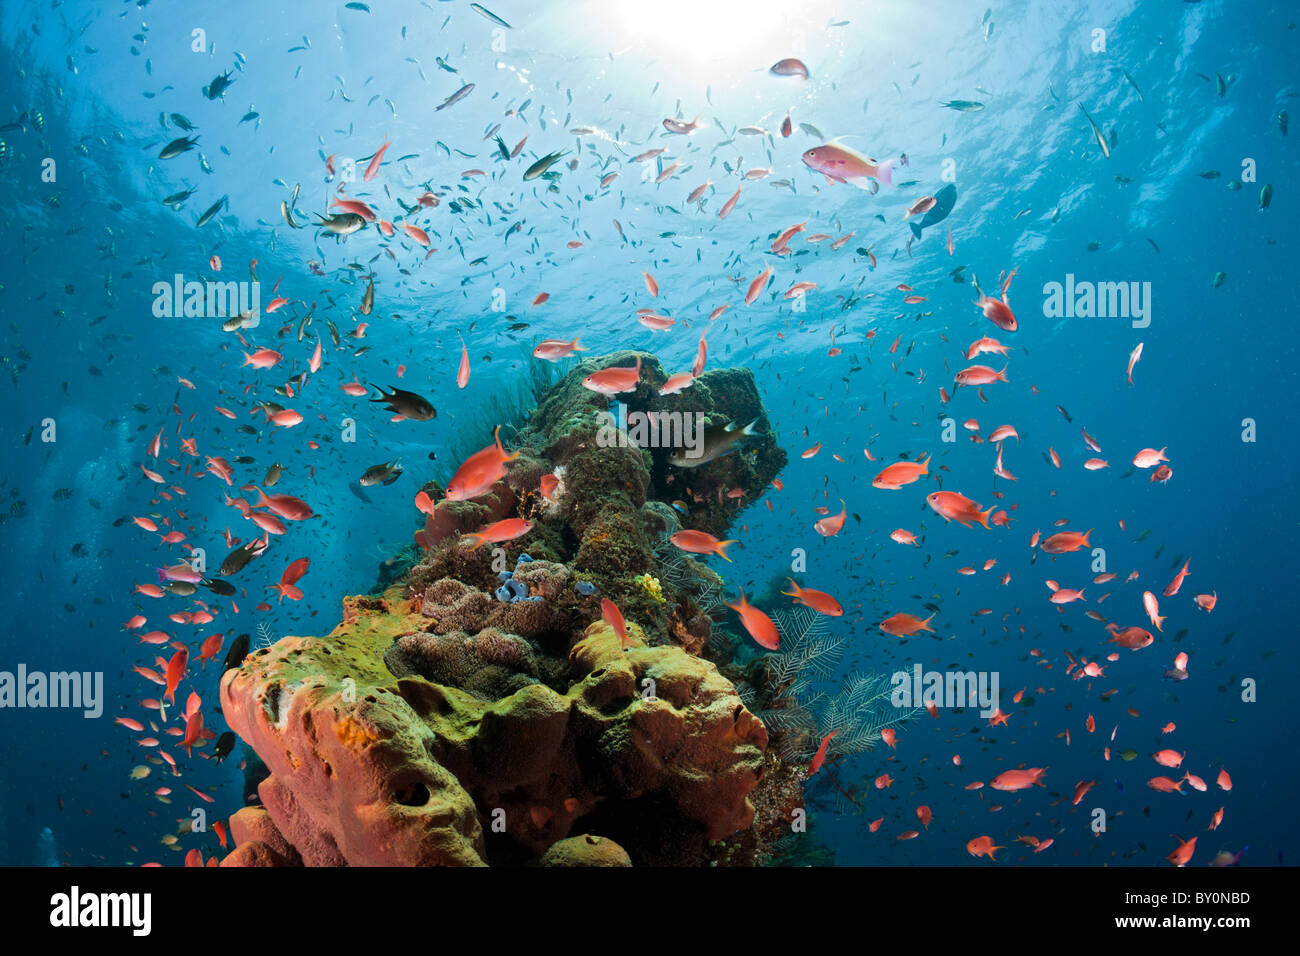 Lyretail Anthias at Liberty Wreck, Pseudanthias squamipinnis, Tulamben, Bali, Indonesia - Stock Image